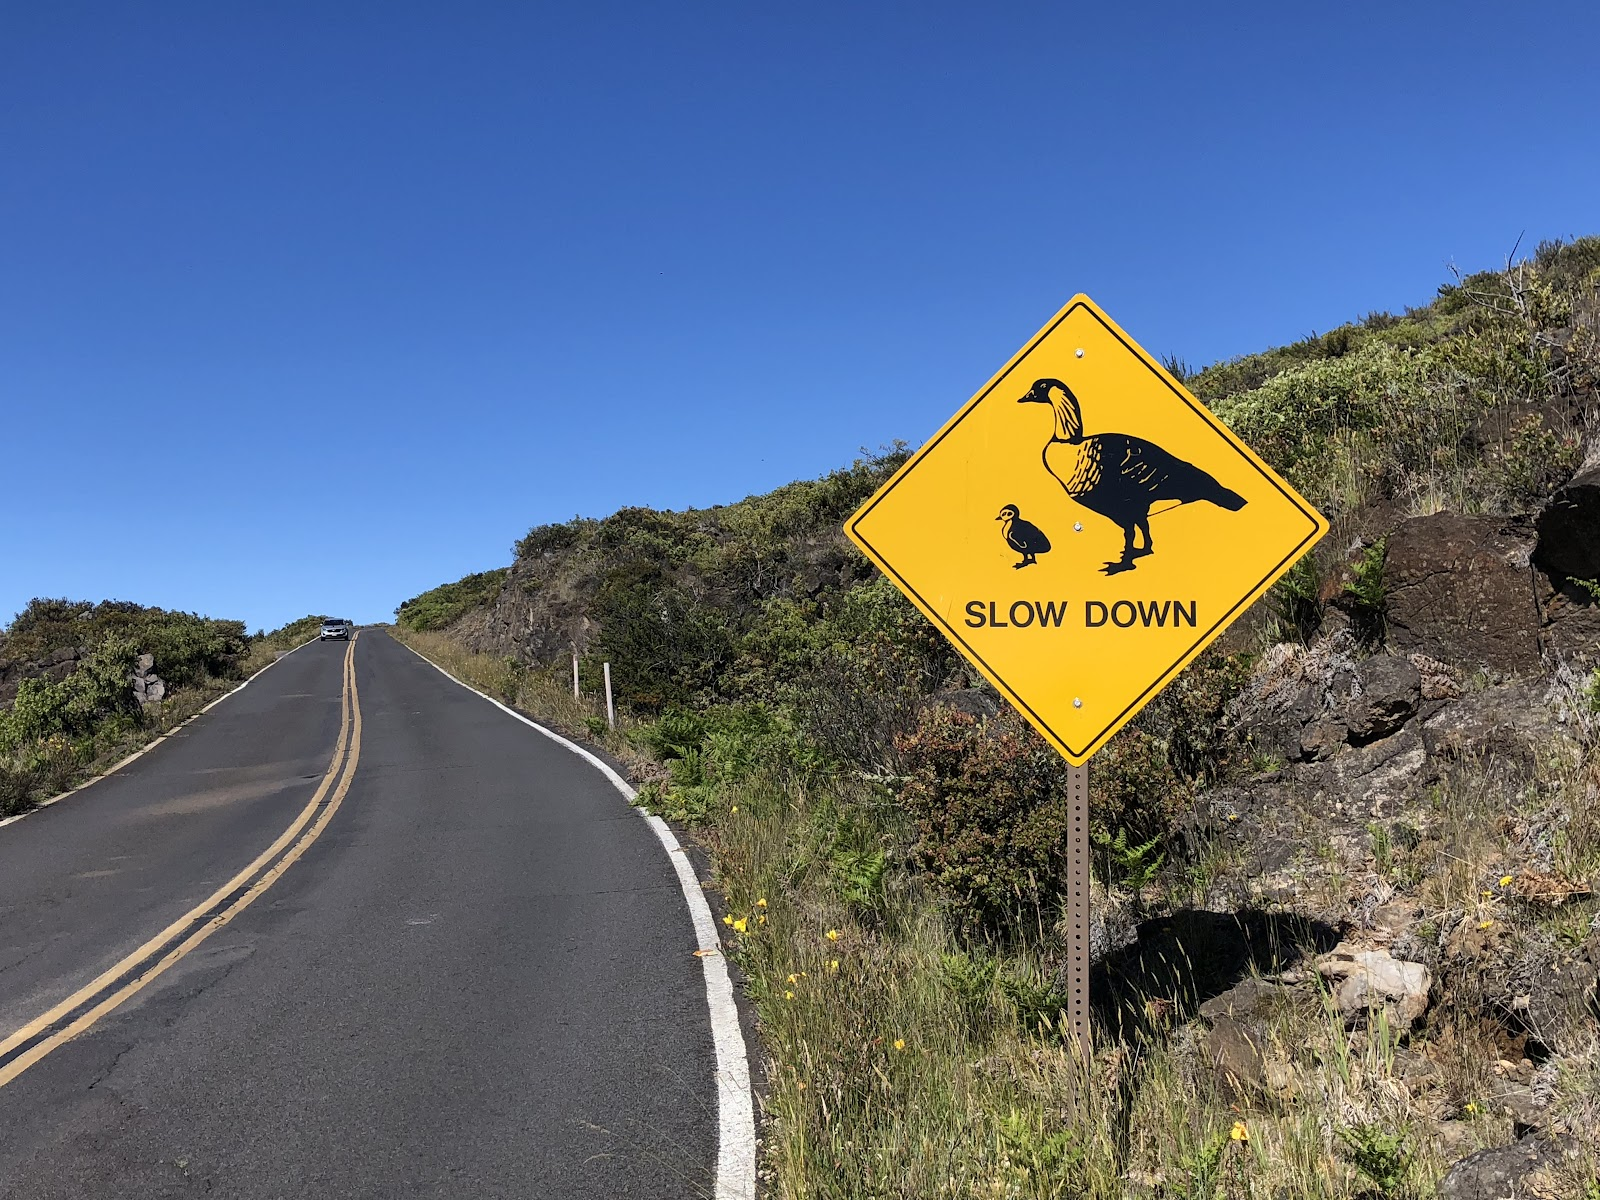 One of the Hardest bike climbs in the US and world - Haleakala Volcano - nene crossing sign and roadway